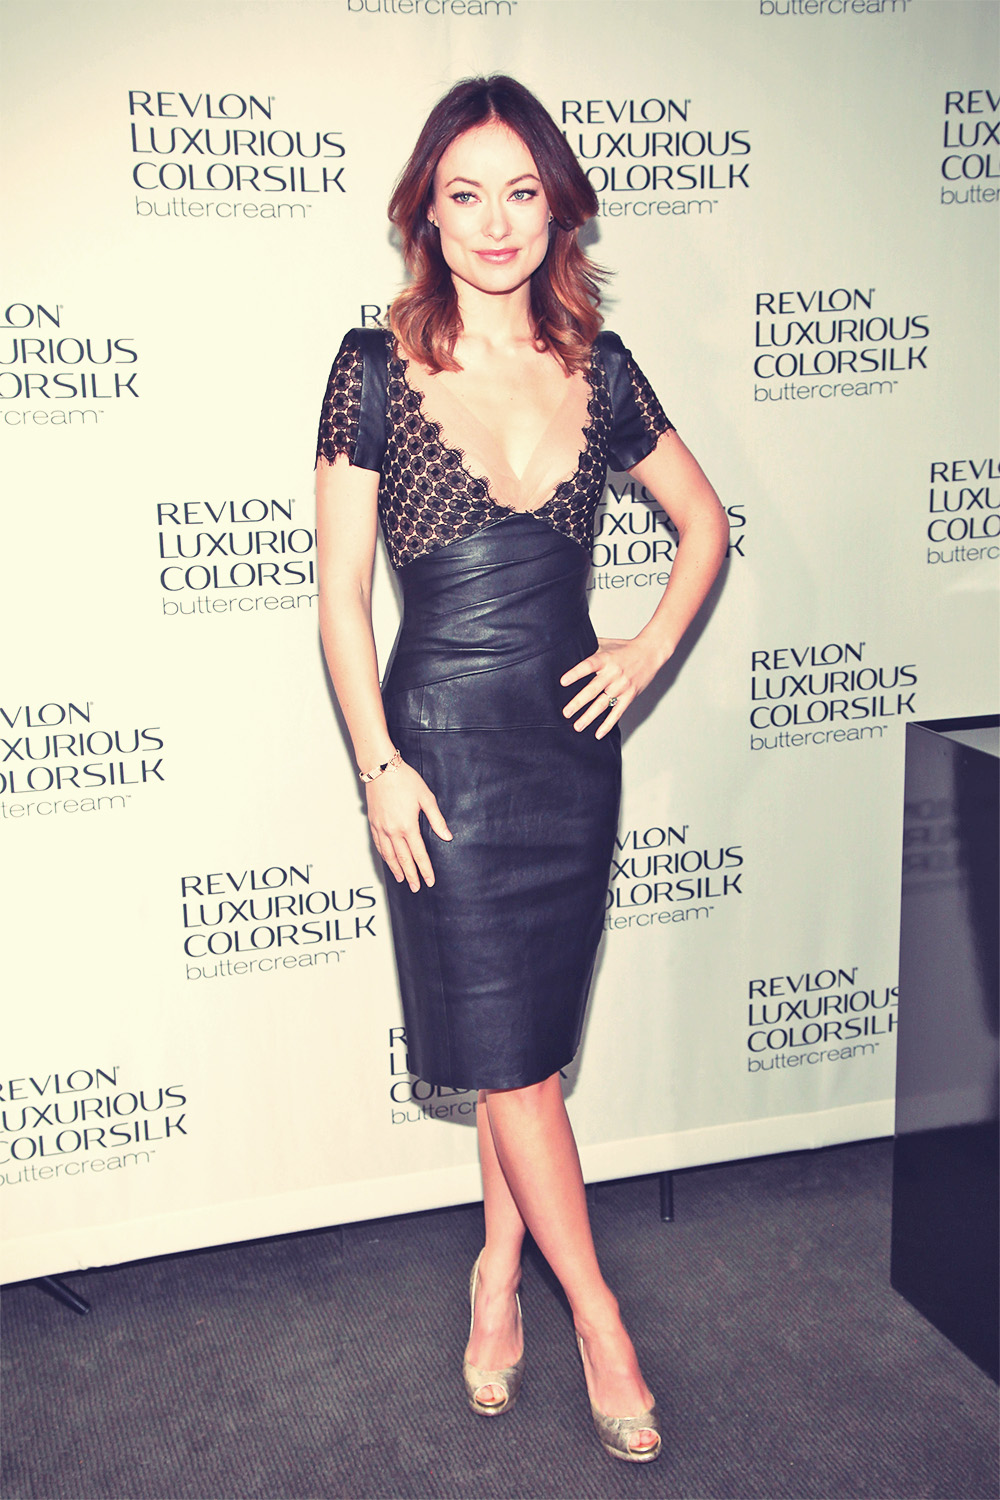 Olivia Wilde attends Revlon Luxurious ColorSilk Buttercream launch